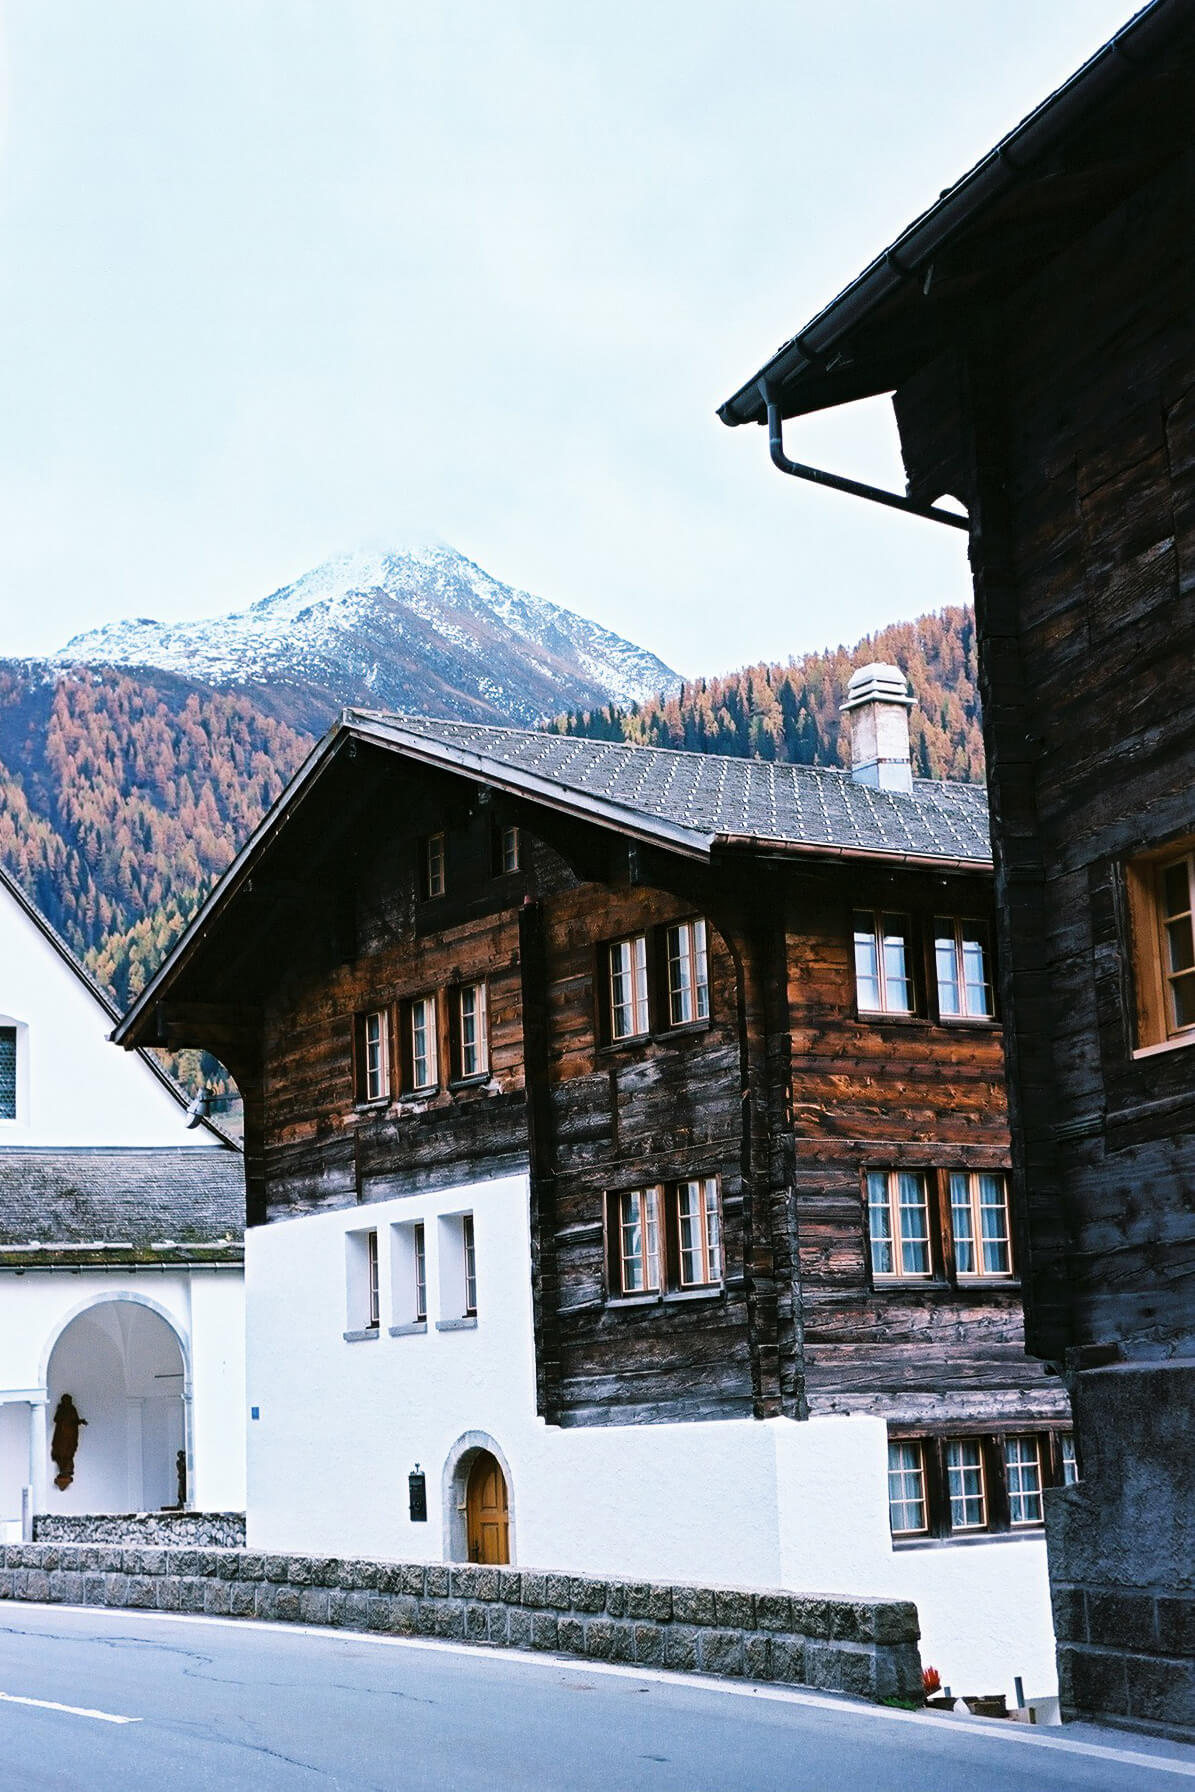 Münster-Geschinen Village, Switzerland